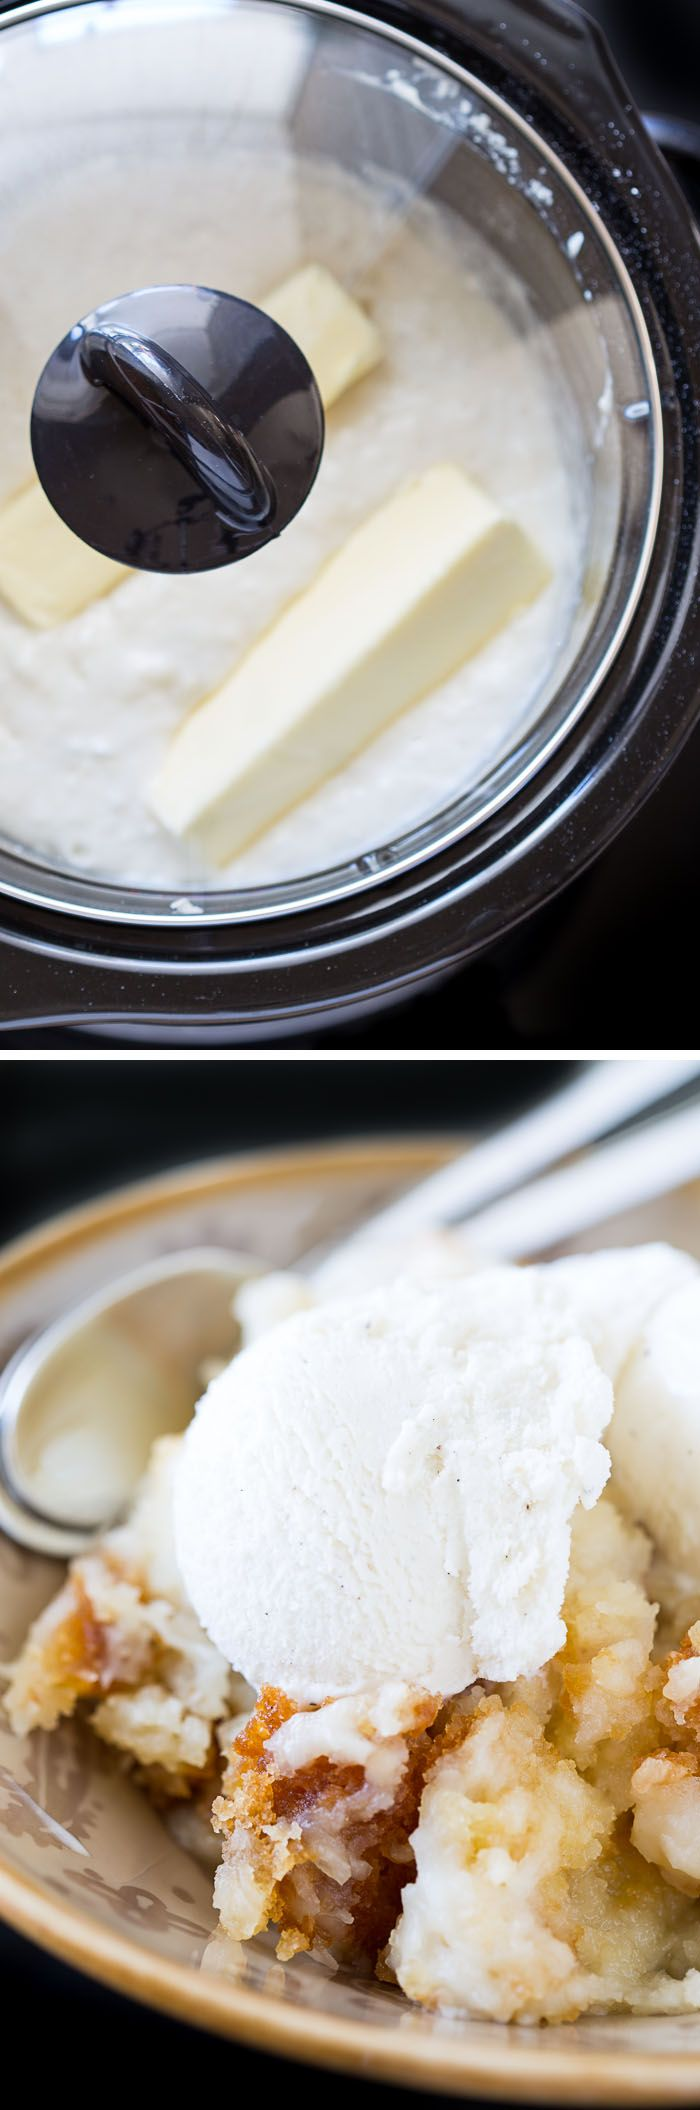 This recipe for 4-Ingredient Slow Cooker Coconut Cake is almost too good to be true! It makes a soft, delicious , butter coconut cake with almost no effort!